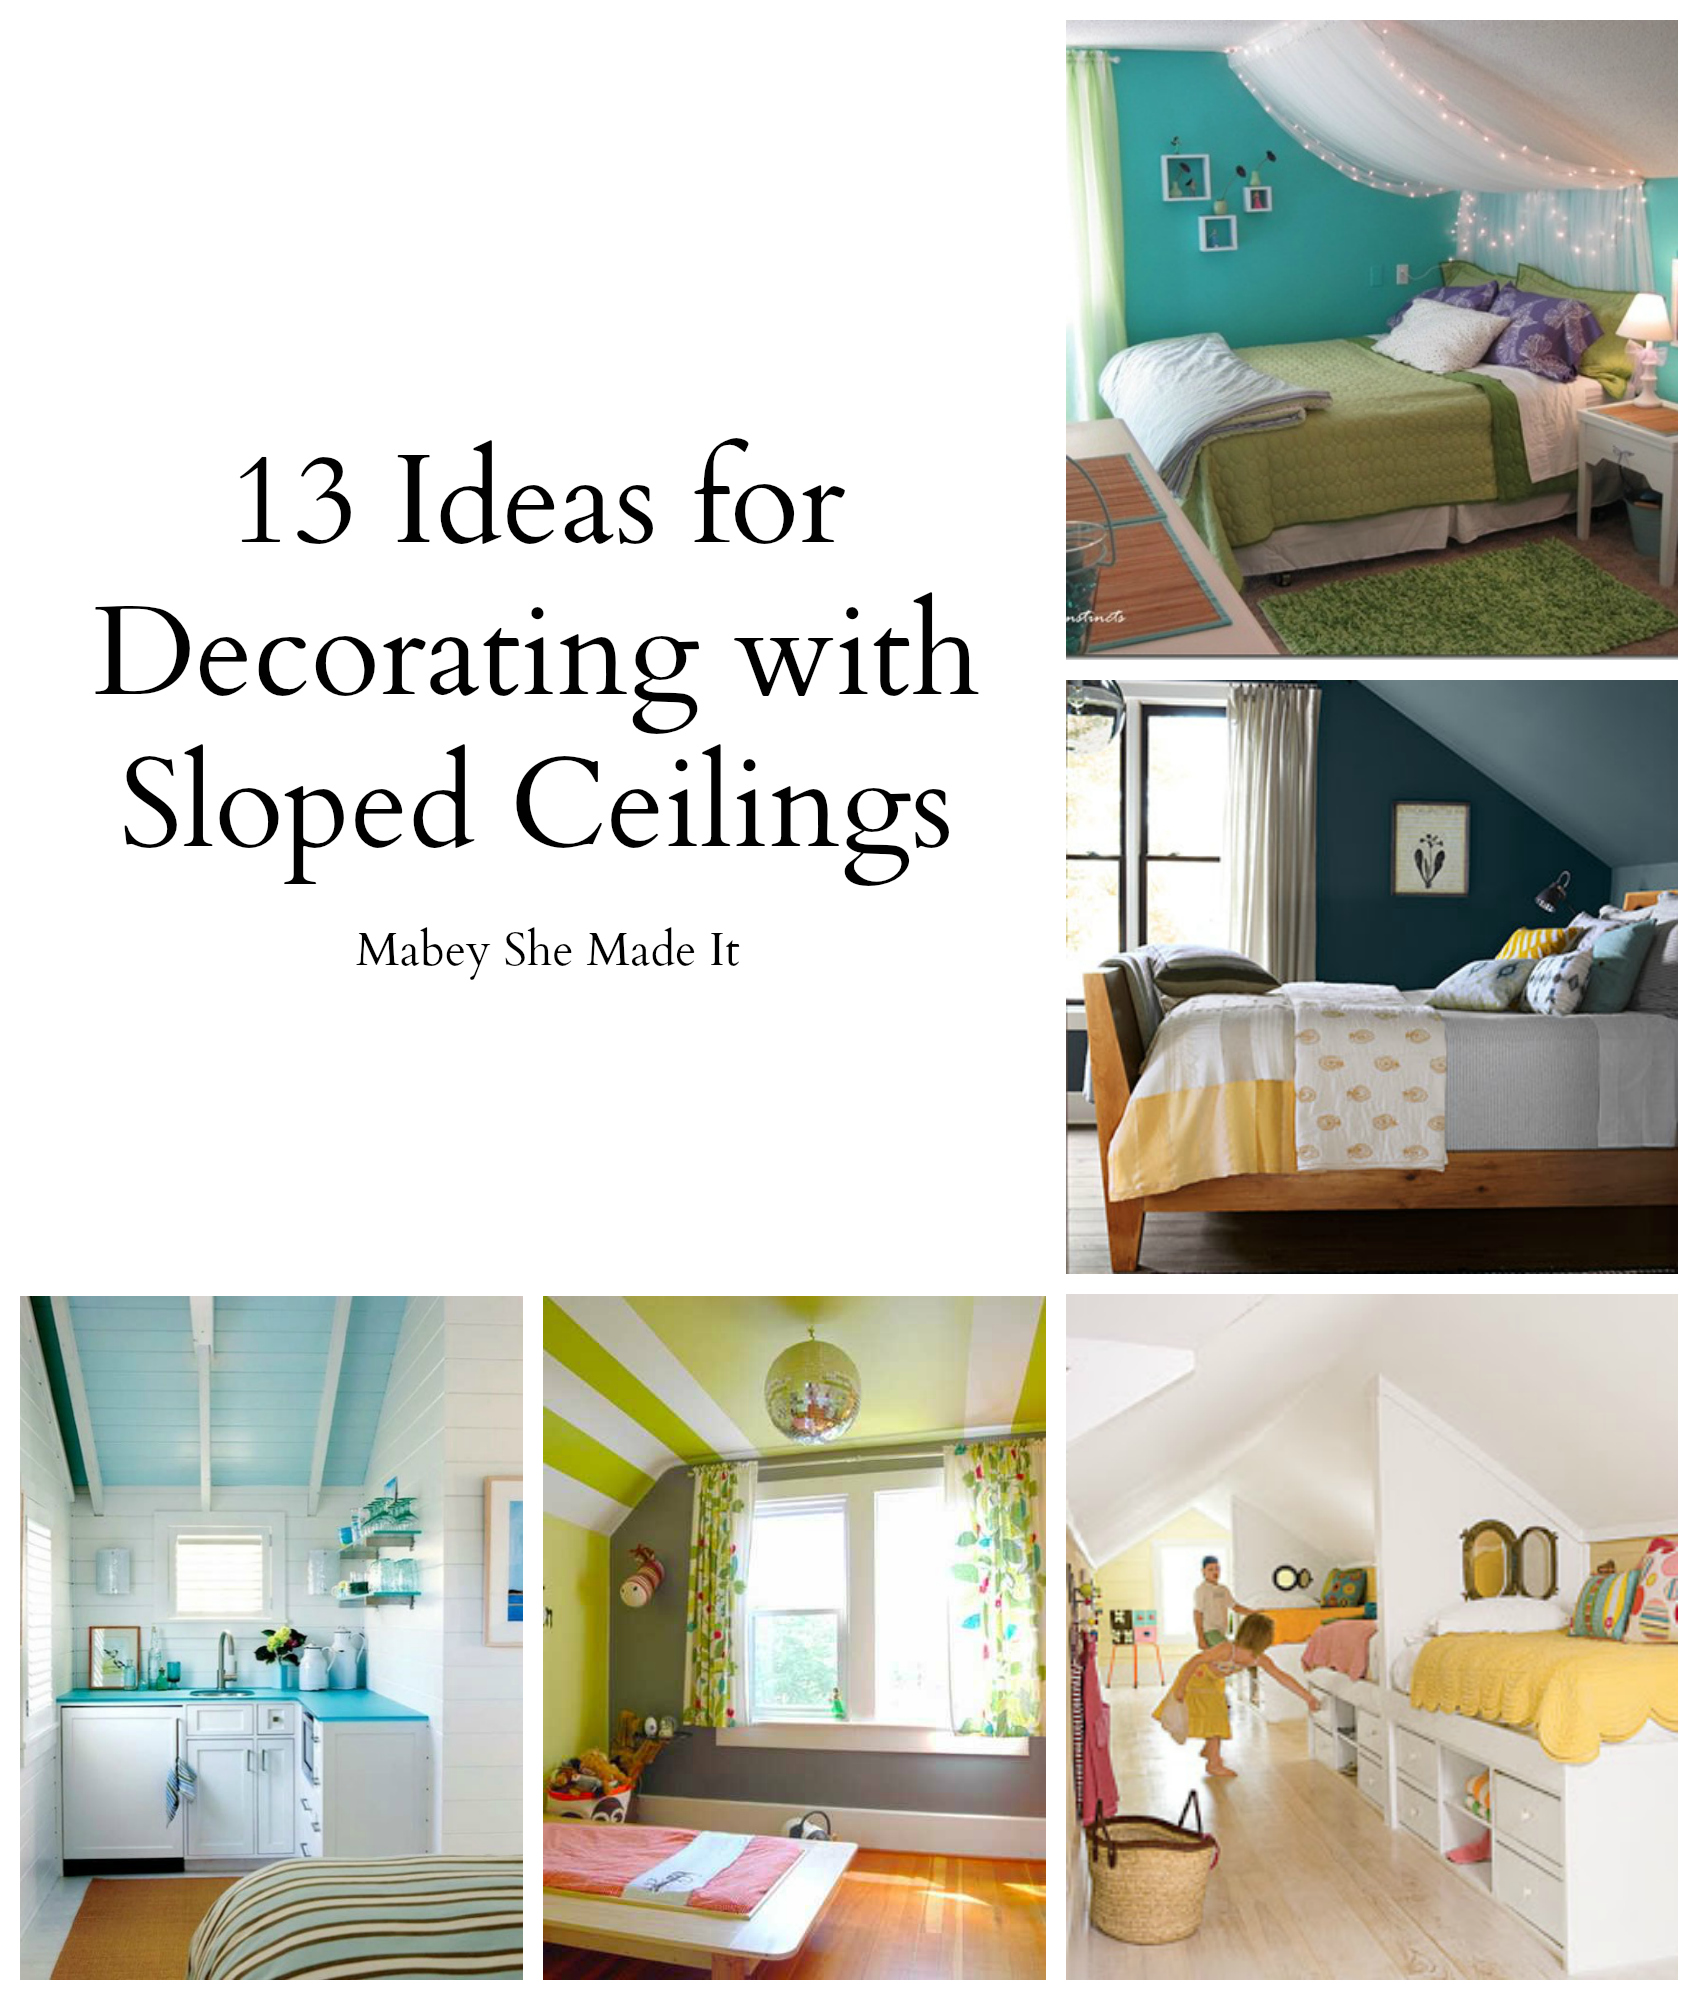 Ideas For Decorating With A Sloped Ceiling Mabey She Made It - Painting ideas for bedrooms with slanted ceilings